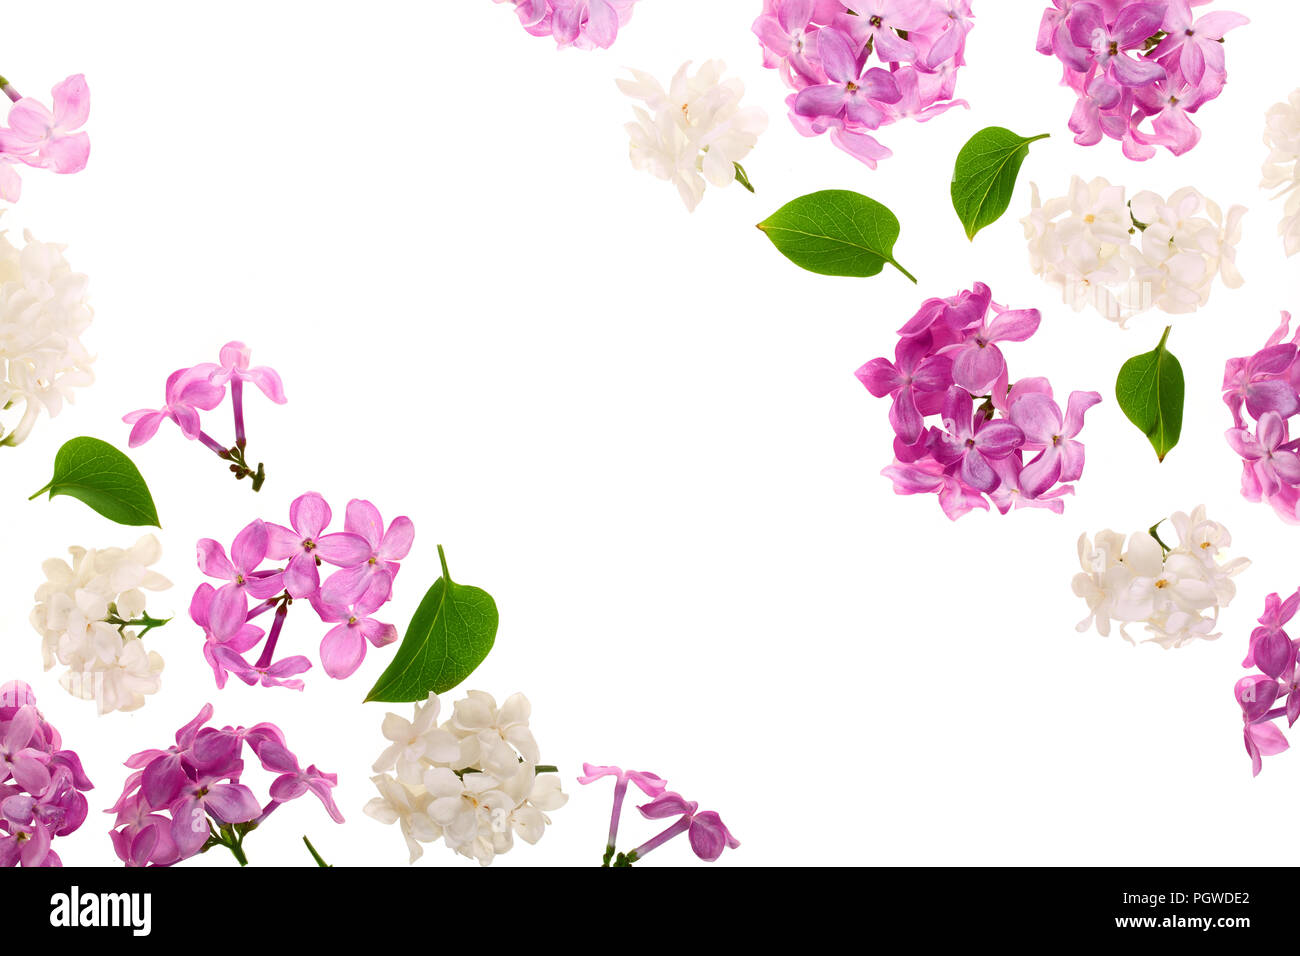 Frame With Lilac Flowers And Leaves Isolated On White Background